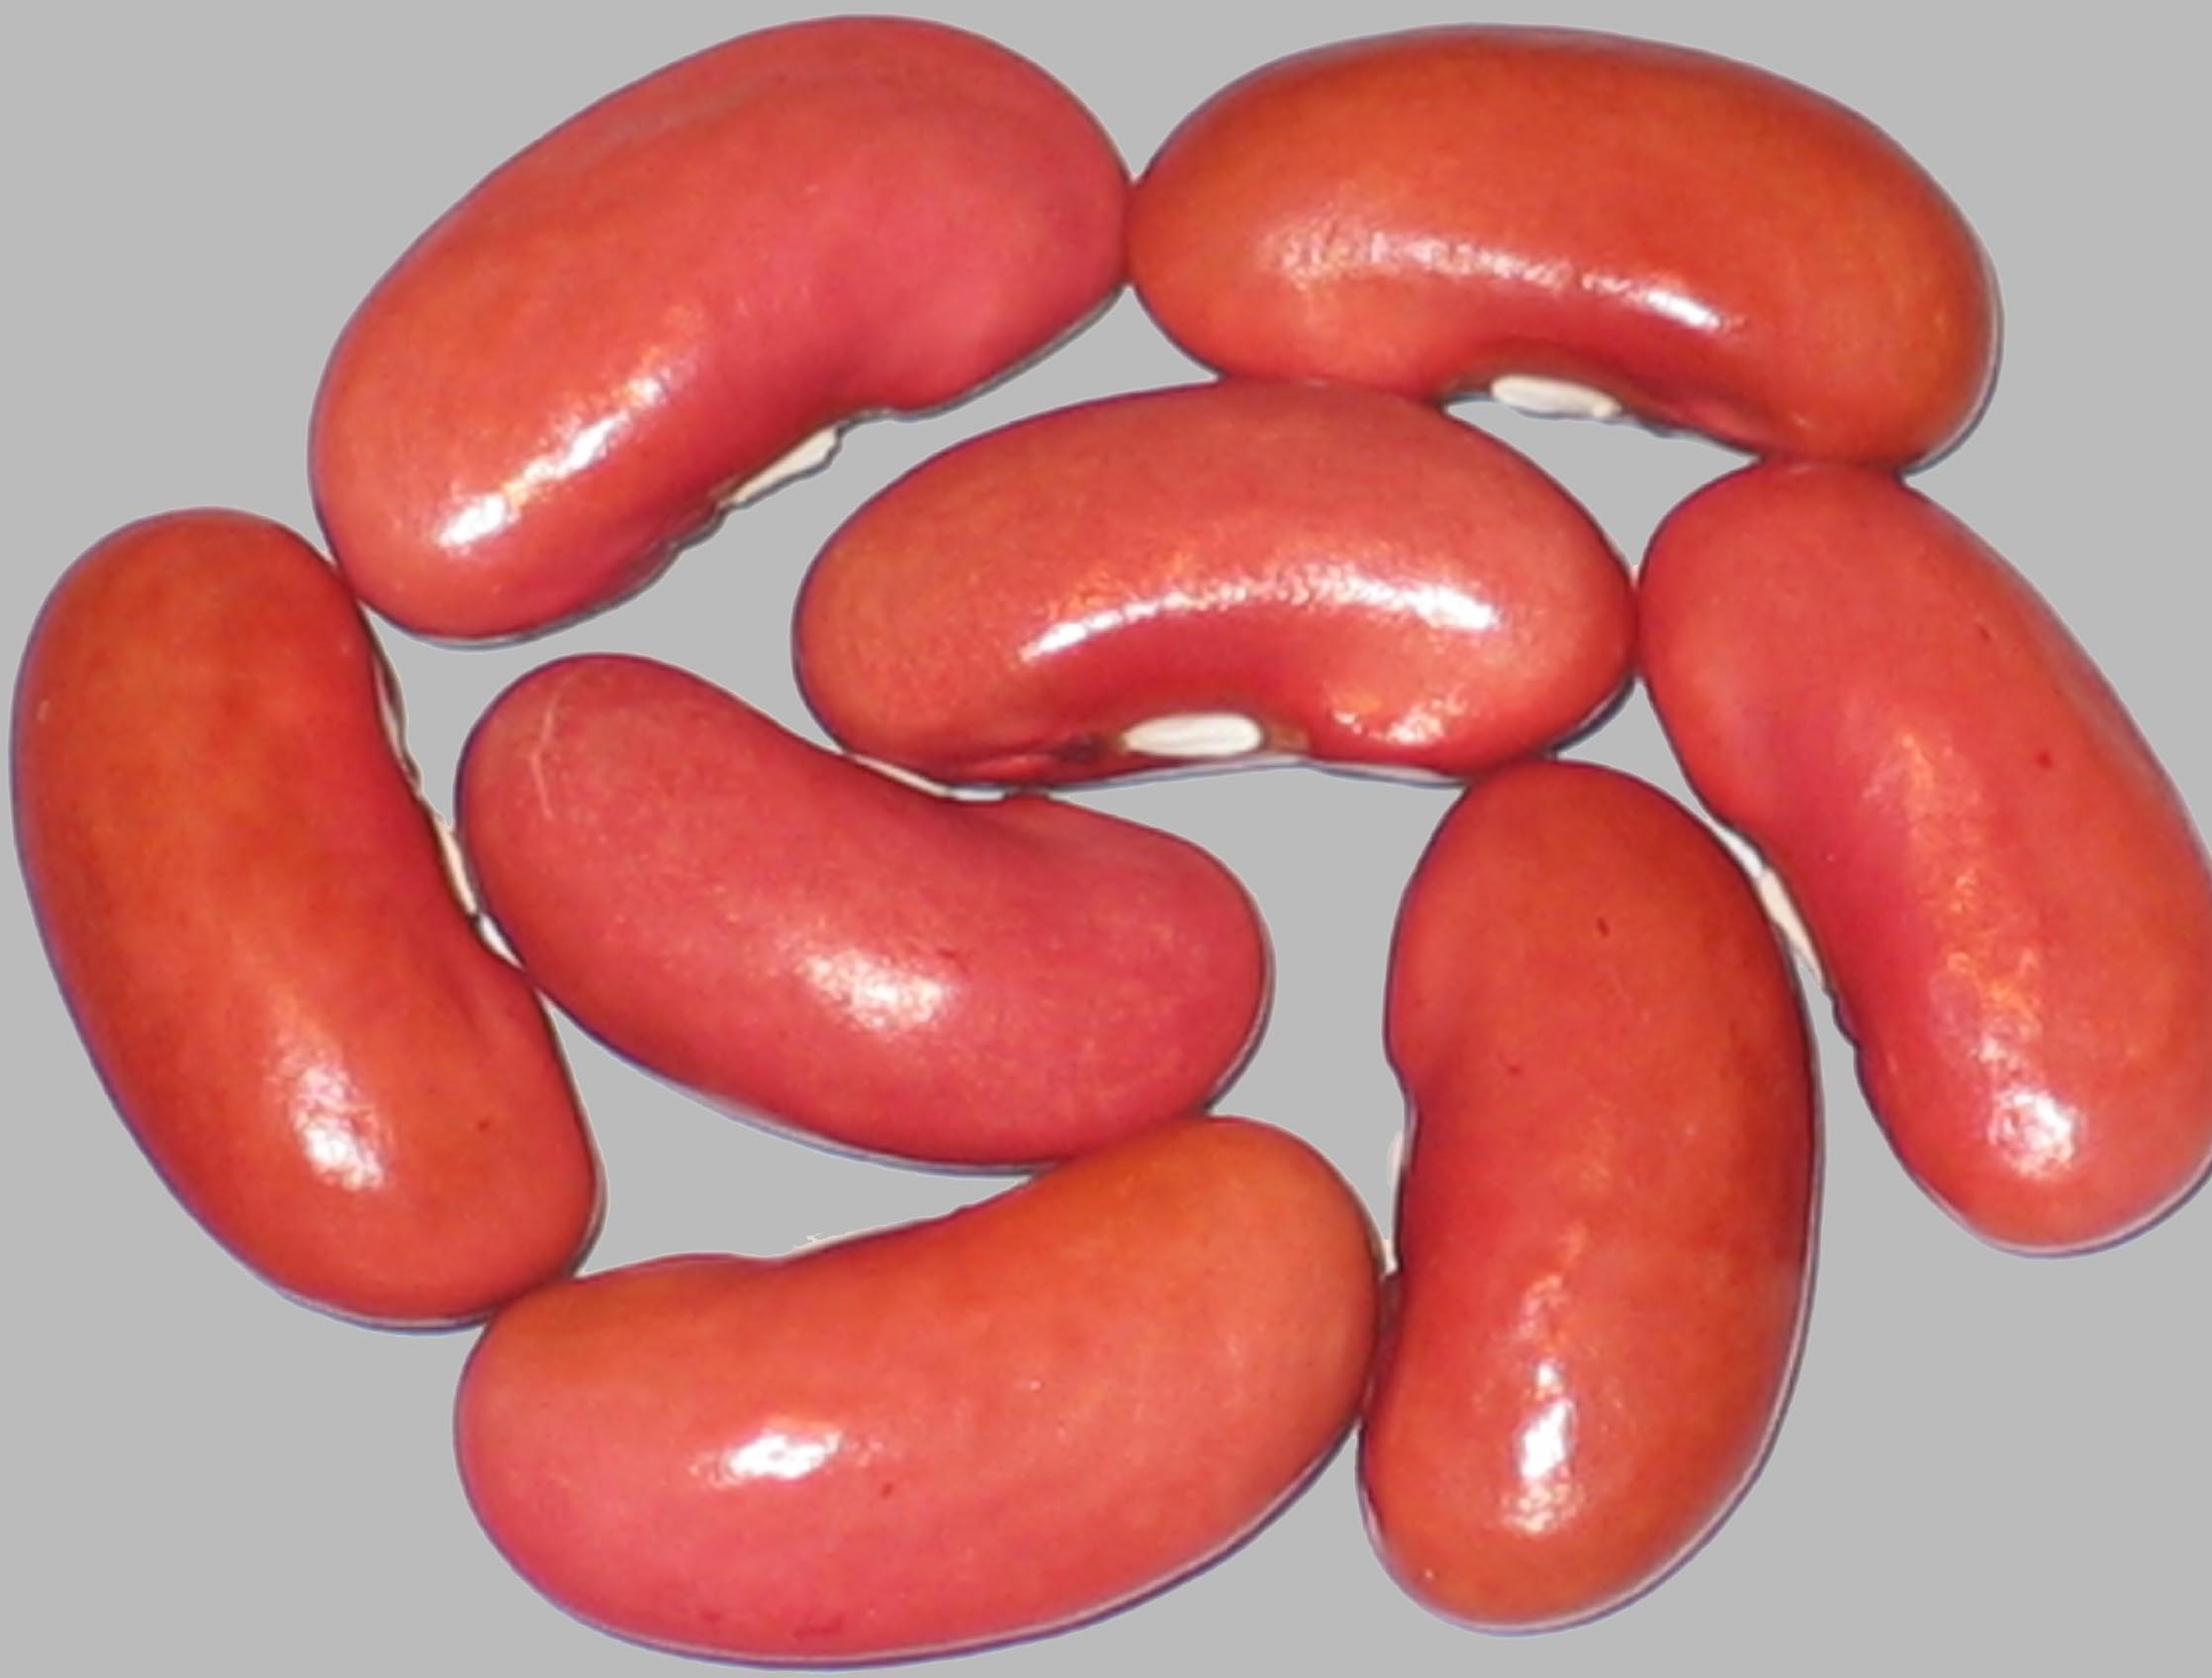 image of Jack Rabbit Kidney beans